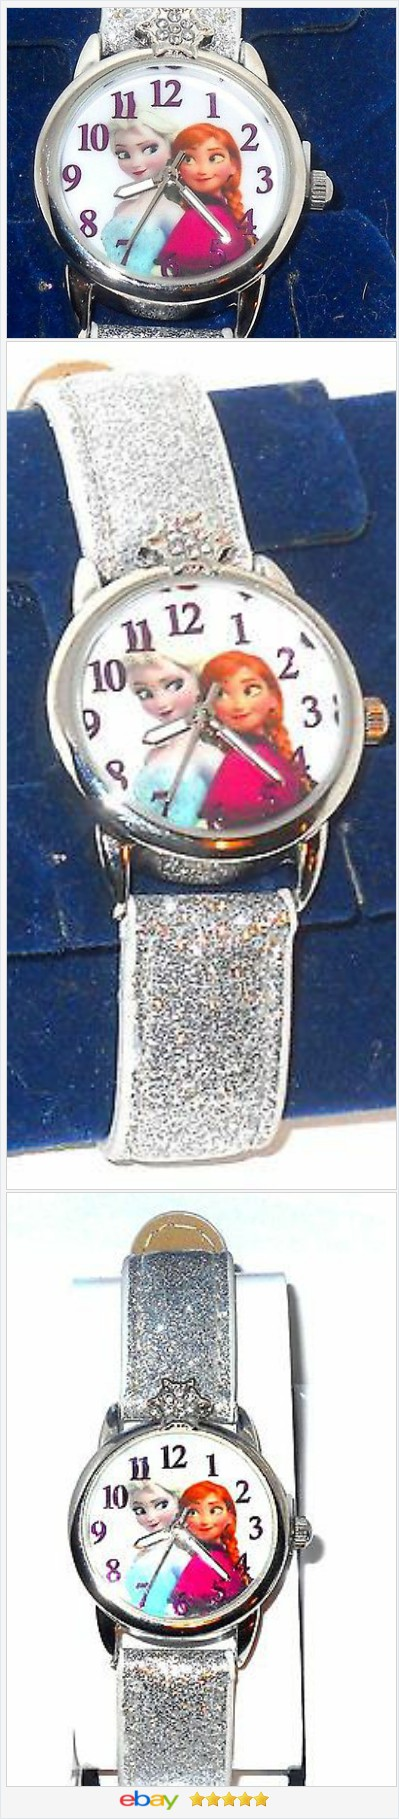 50% OFF #Ebay http://stores.ebay.com/JEWELRY-AND-GIFTS-BY-ALICE-AND-ANN Disney Frozen Anna and Elsa Glitter Watch USA Seller